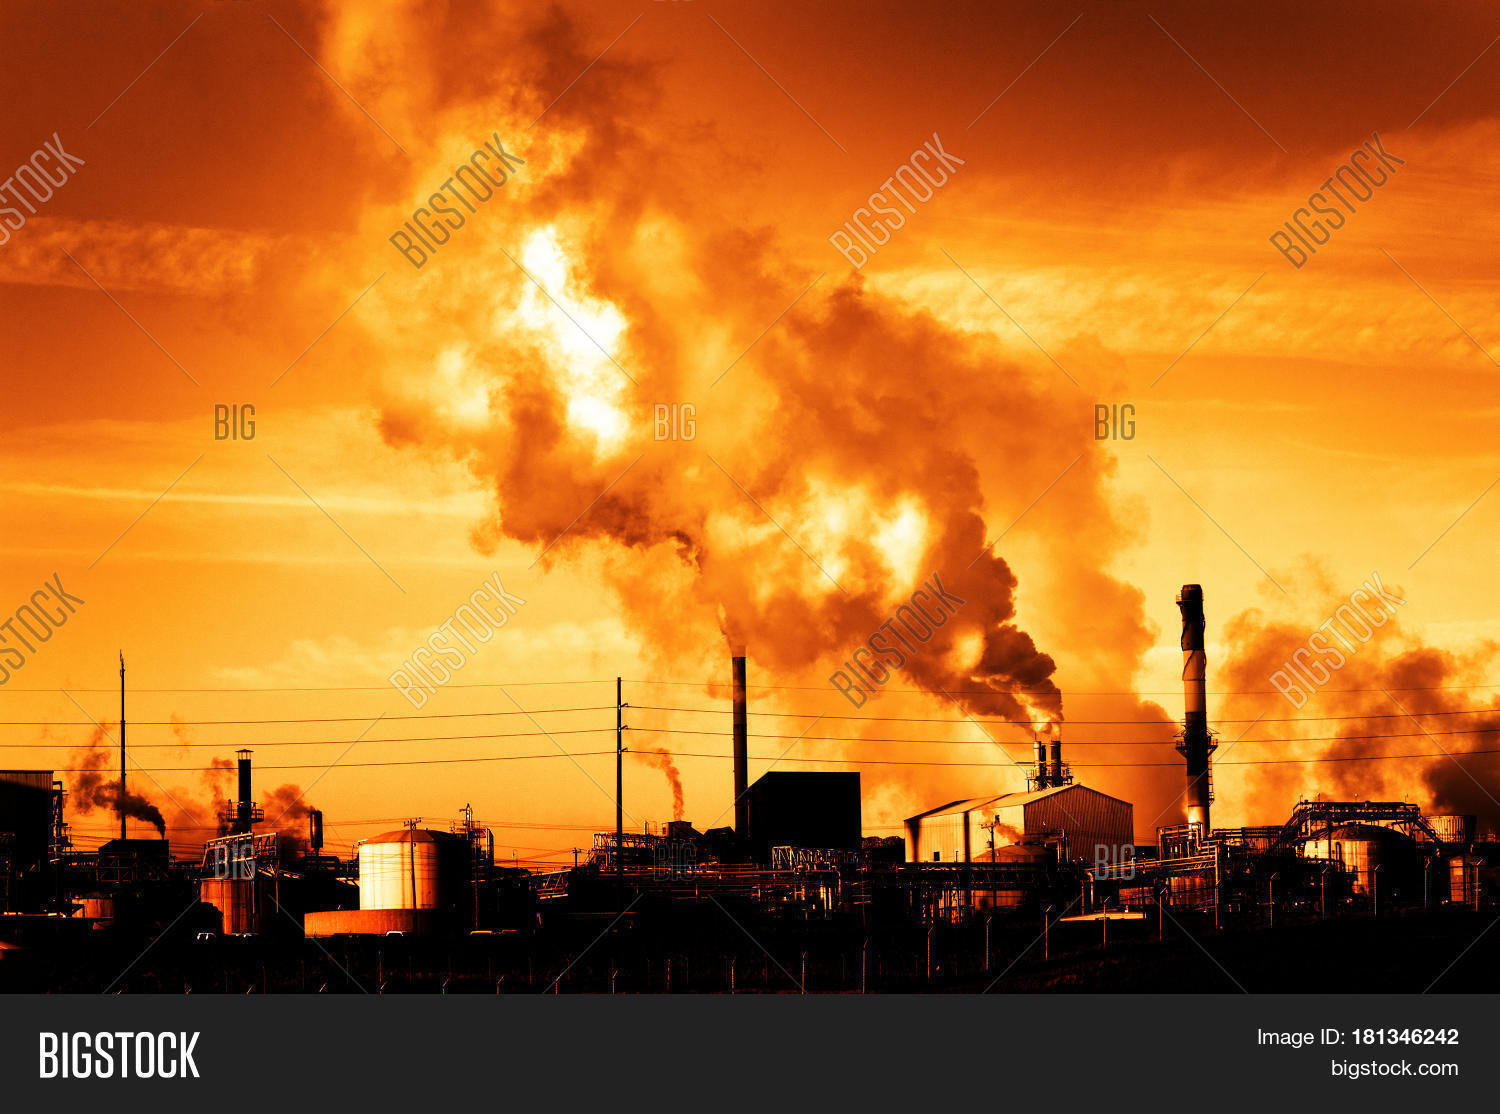 pollution is the by product of development